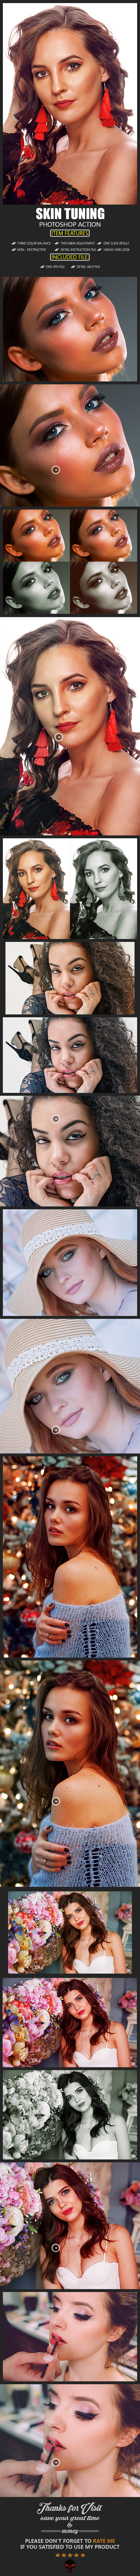 Skin Tuning Photoshop Action - Photo Effects Actions